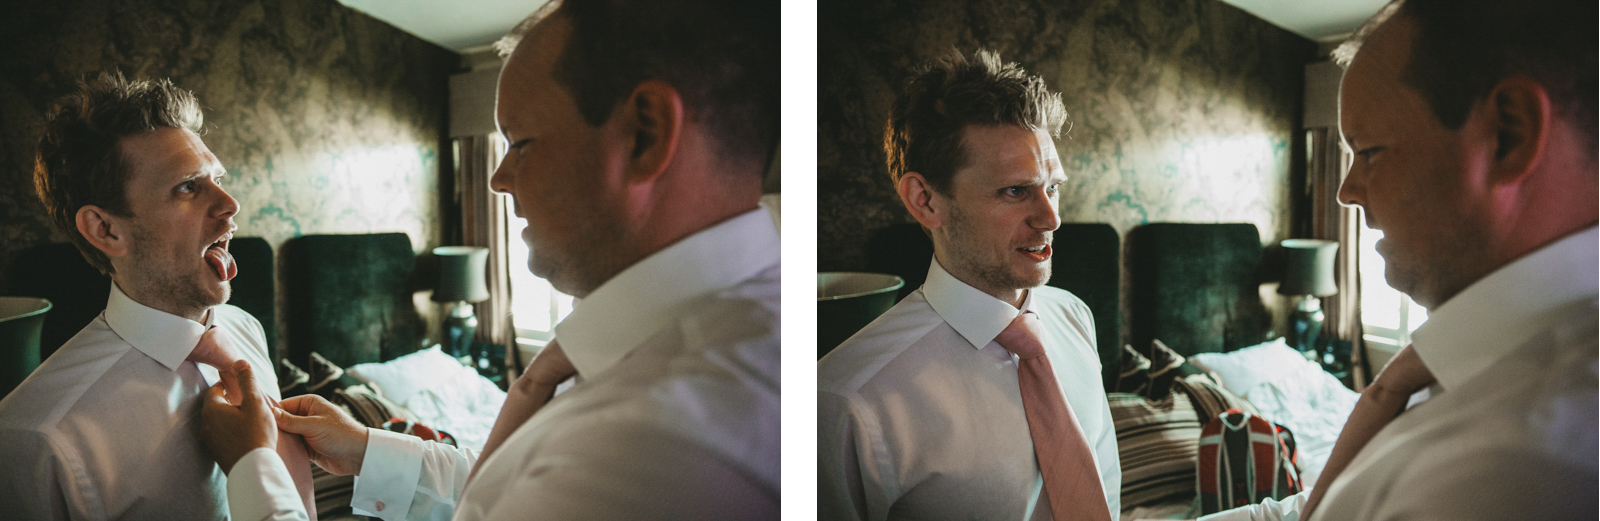 Chris Bradshaw Wedding Photography - Simon & Amanda Wedding Photos-7